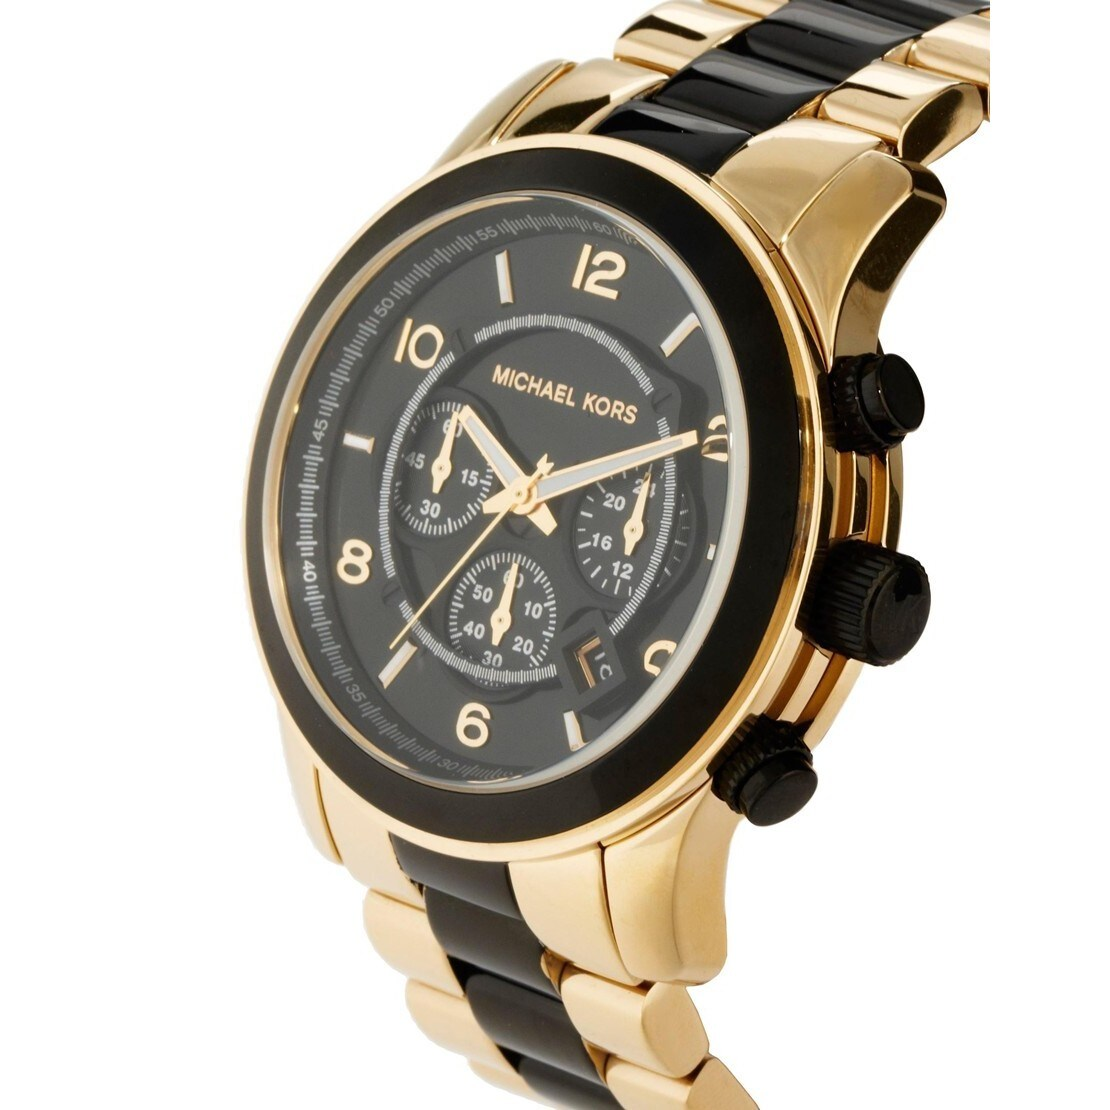 9cca81a33ebc Shop Michael Kors Men s MK8265 Chronograph Black Dial Watch - Free Shipping  Today - Overstock - 8582935